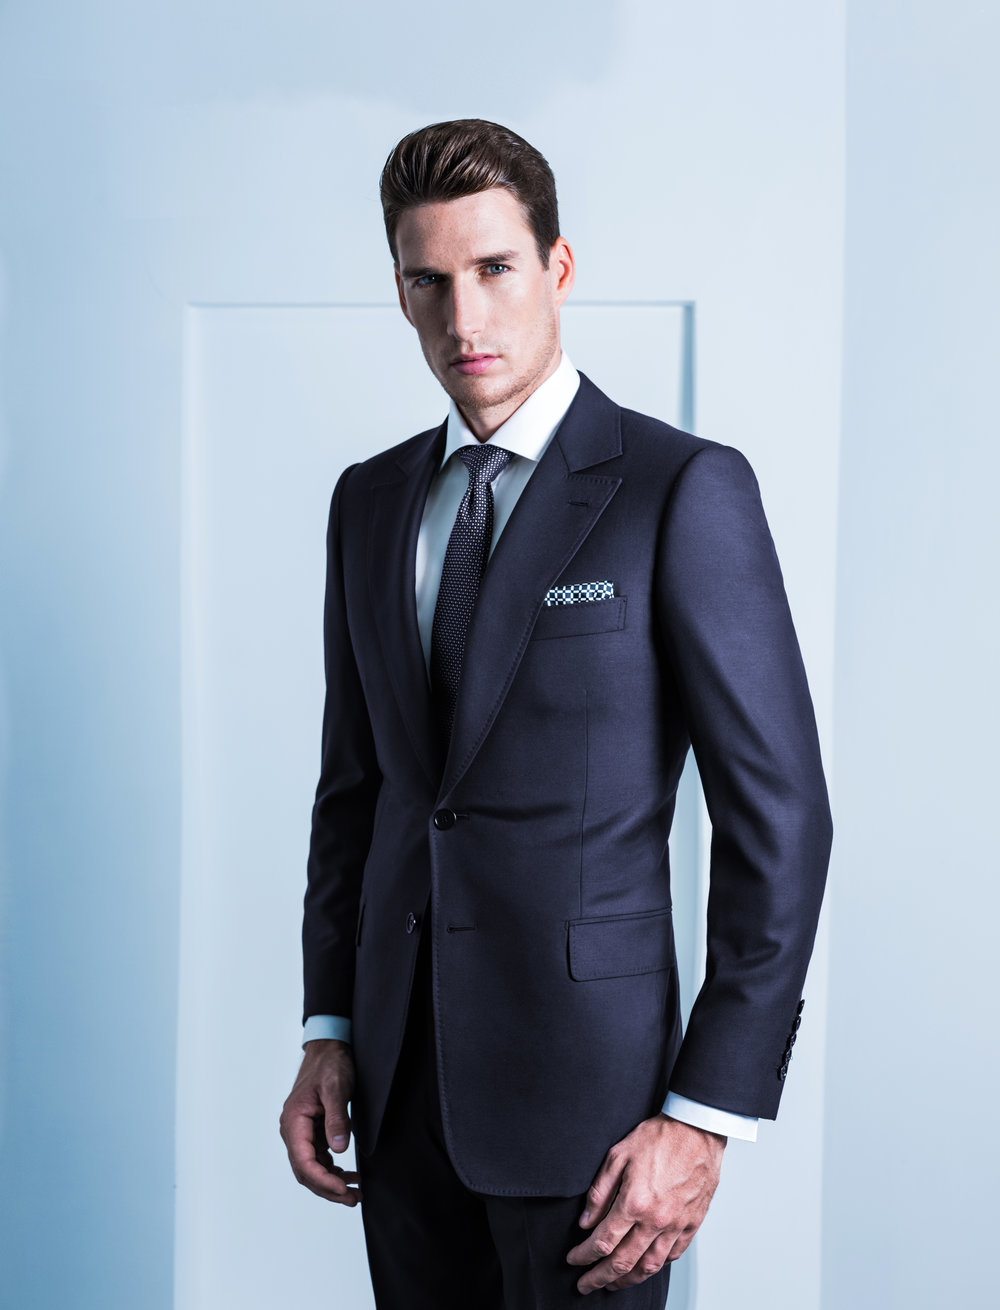 To enhance men - The Suit